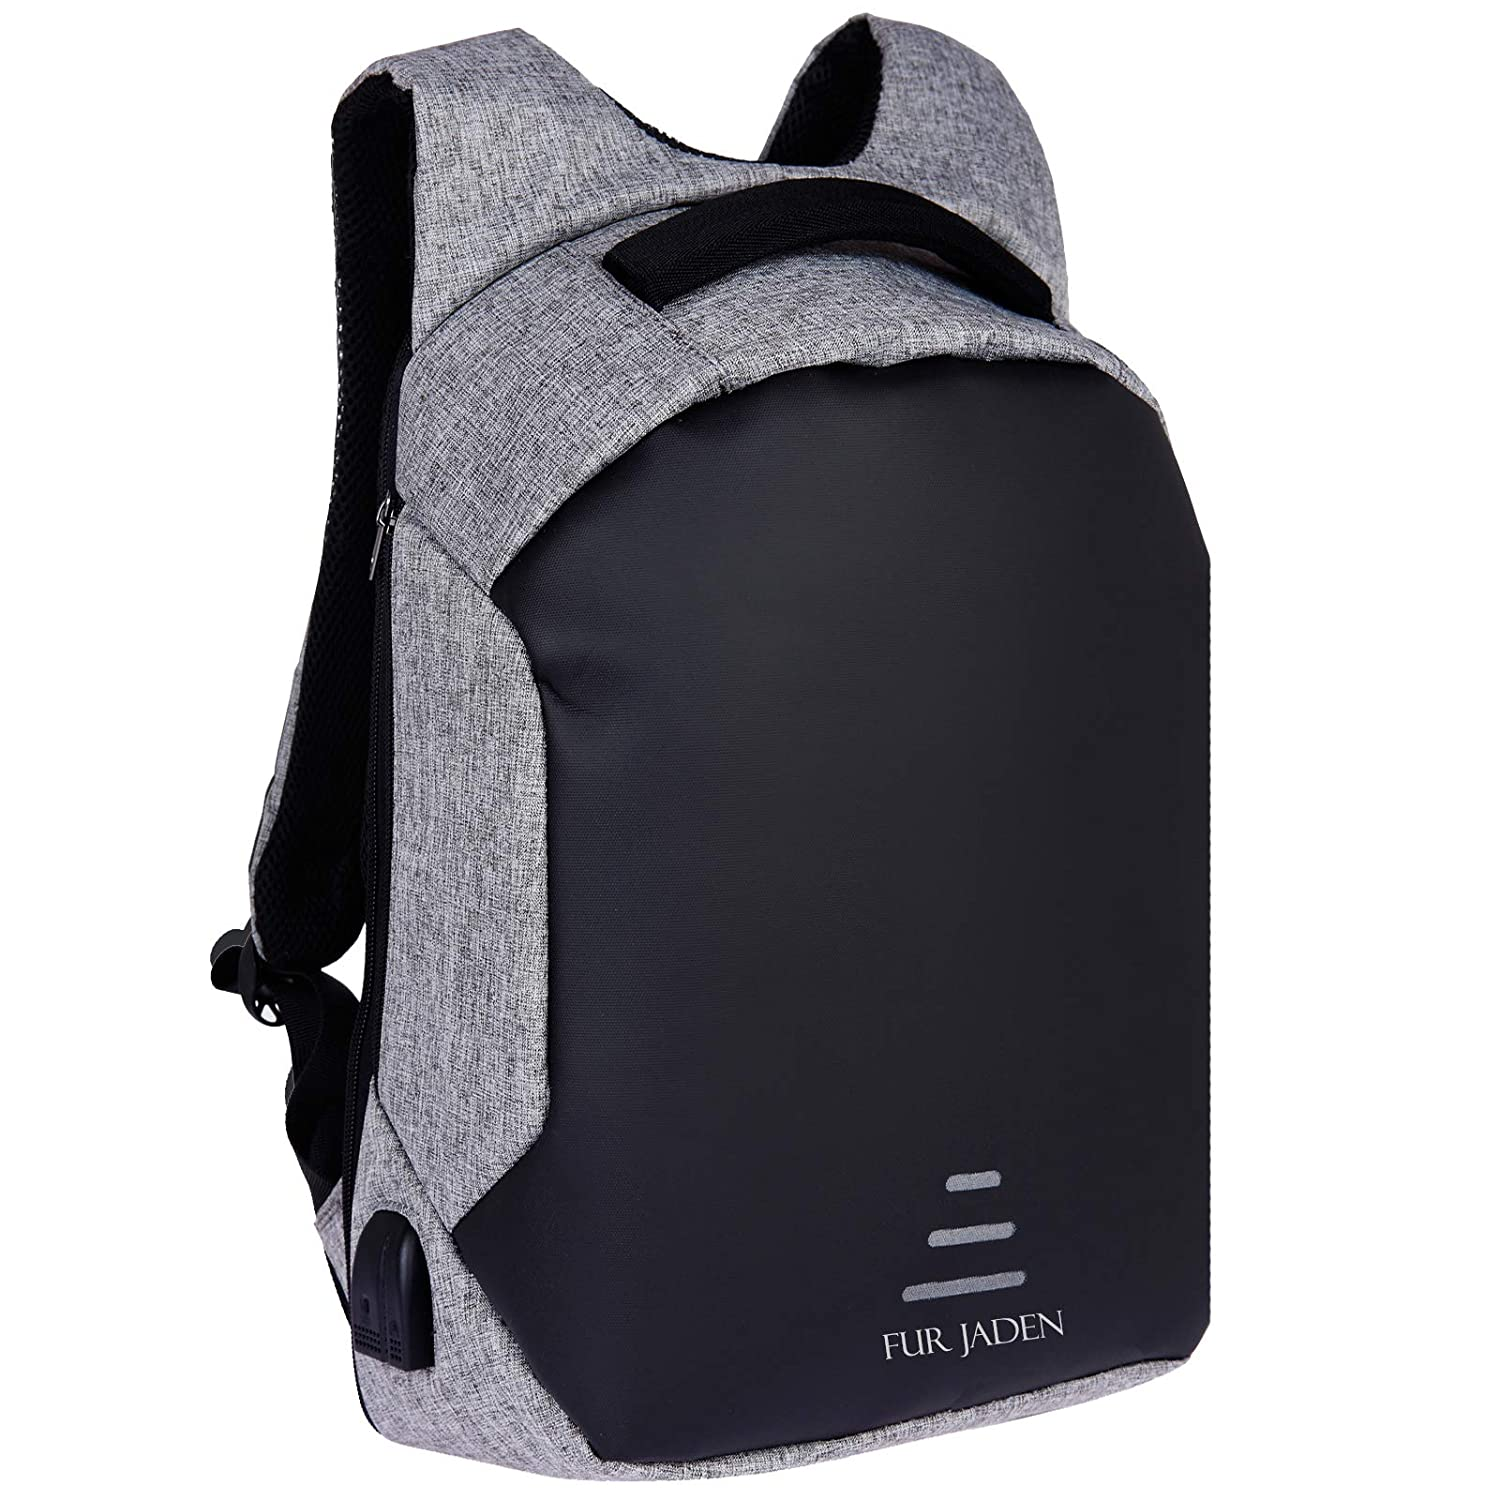 FUR JADEN Grey Anti Theft Casual Backpack with USB Charging